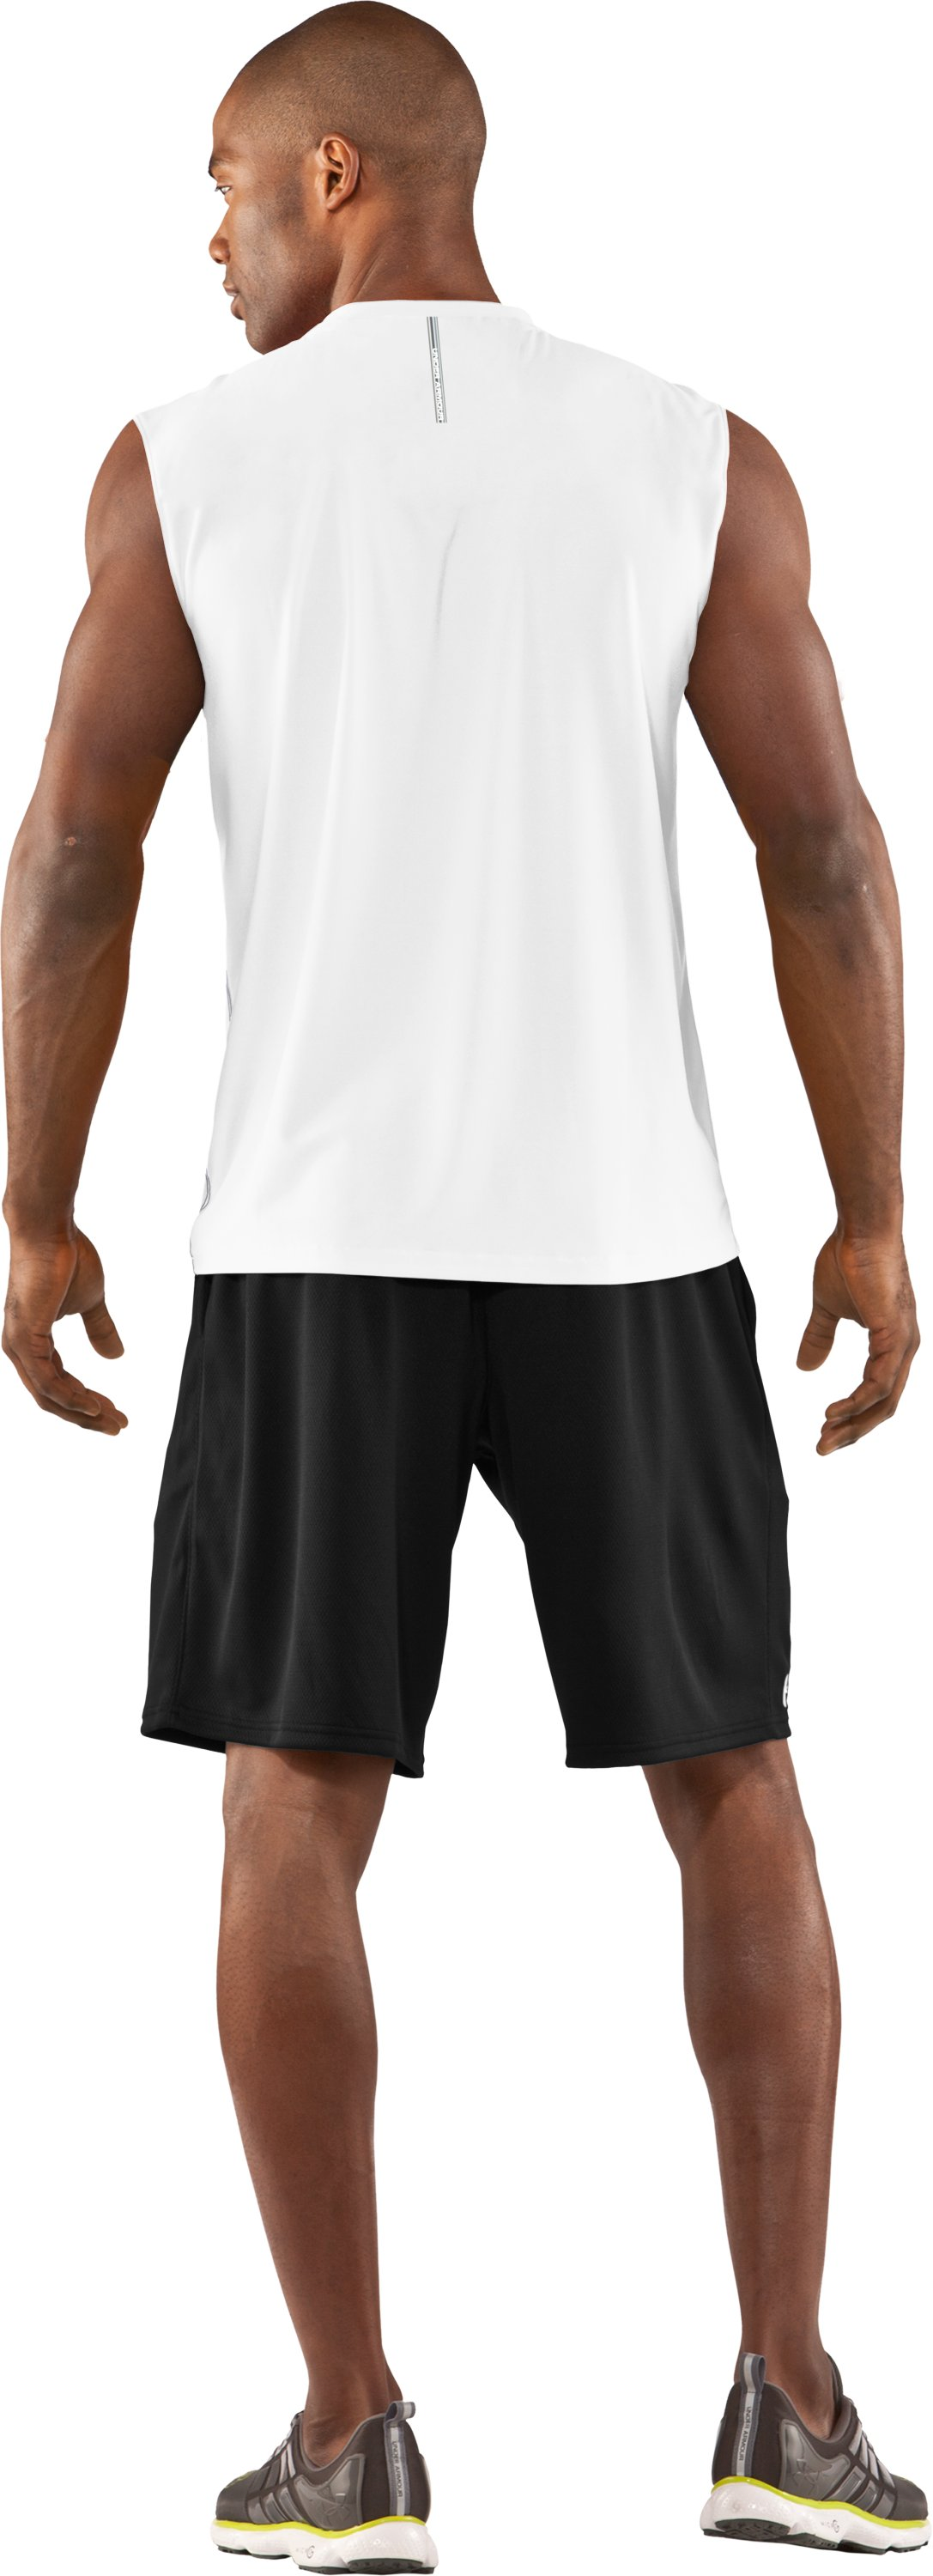 Men's coldblack® Sleeveless T-Shirt, White, Back